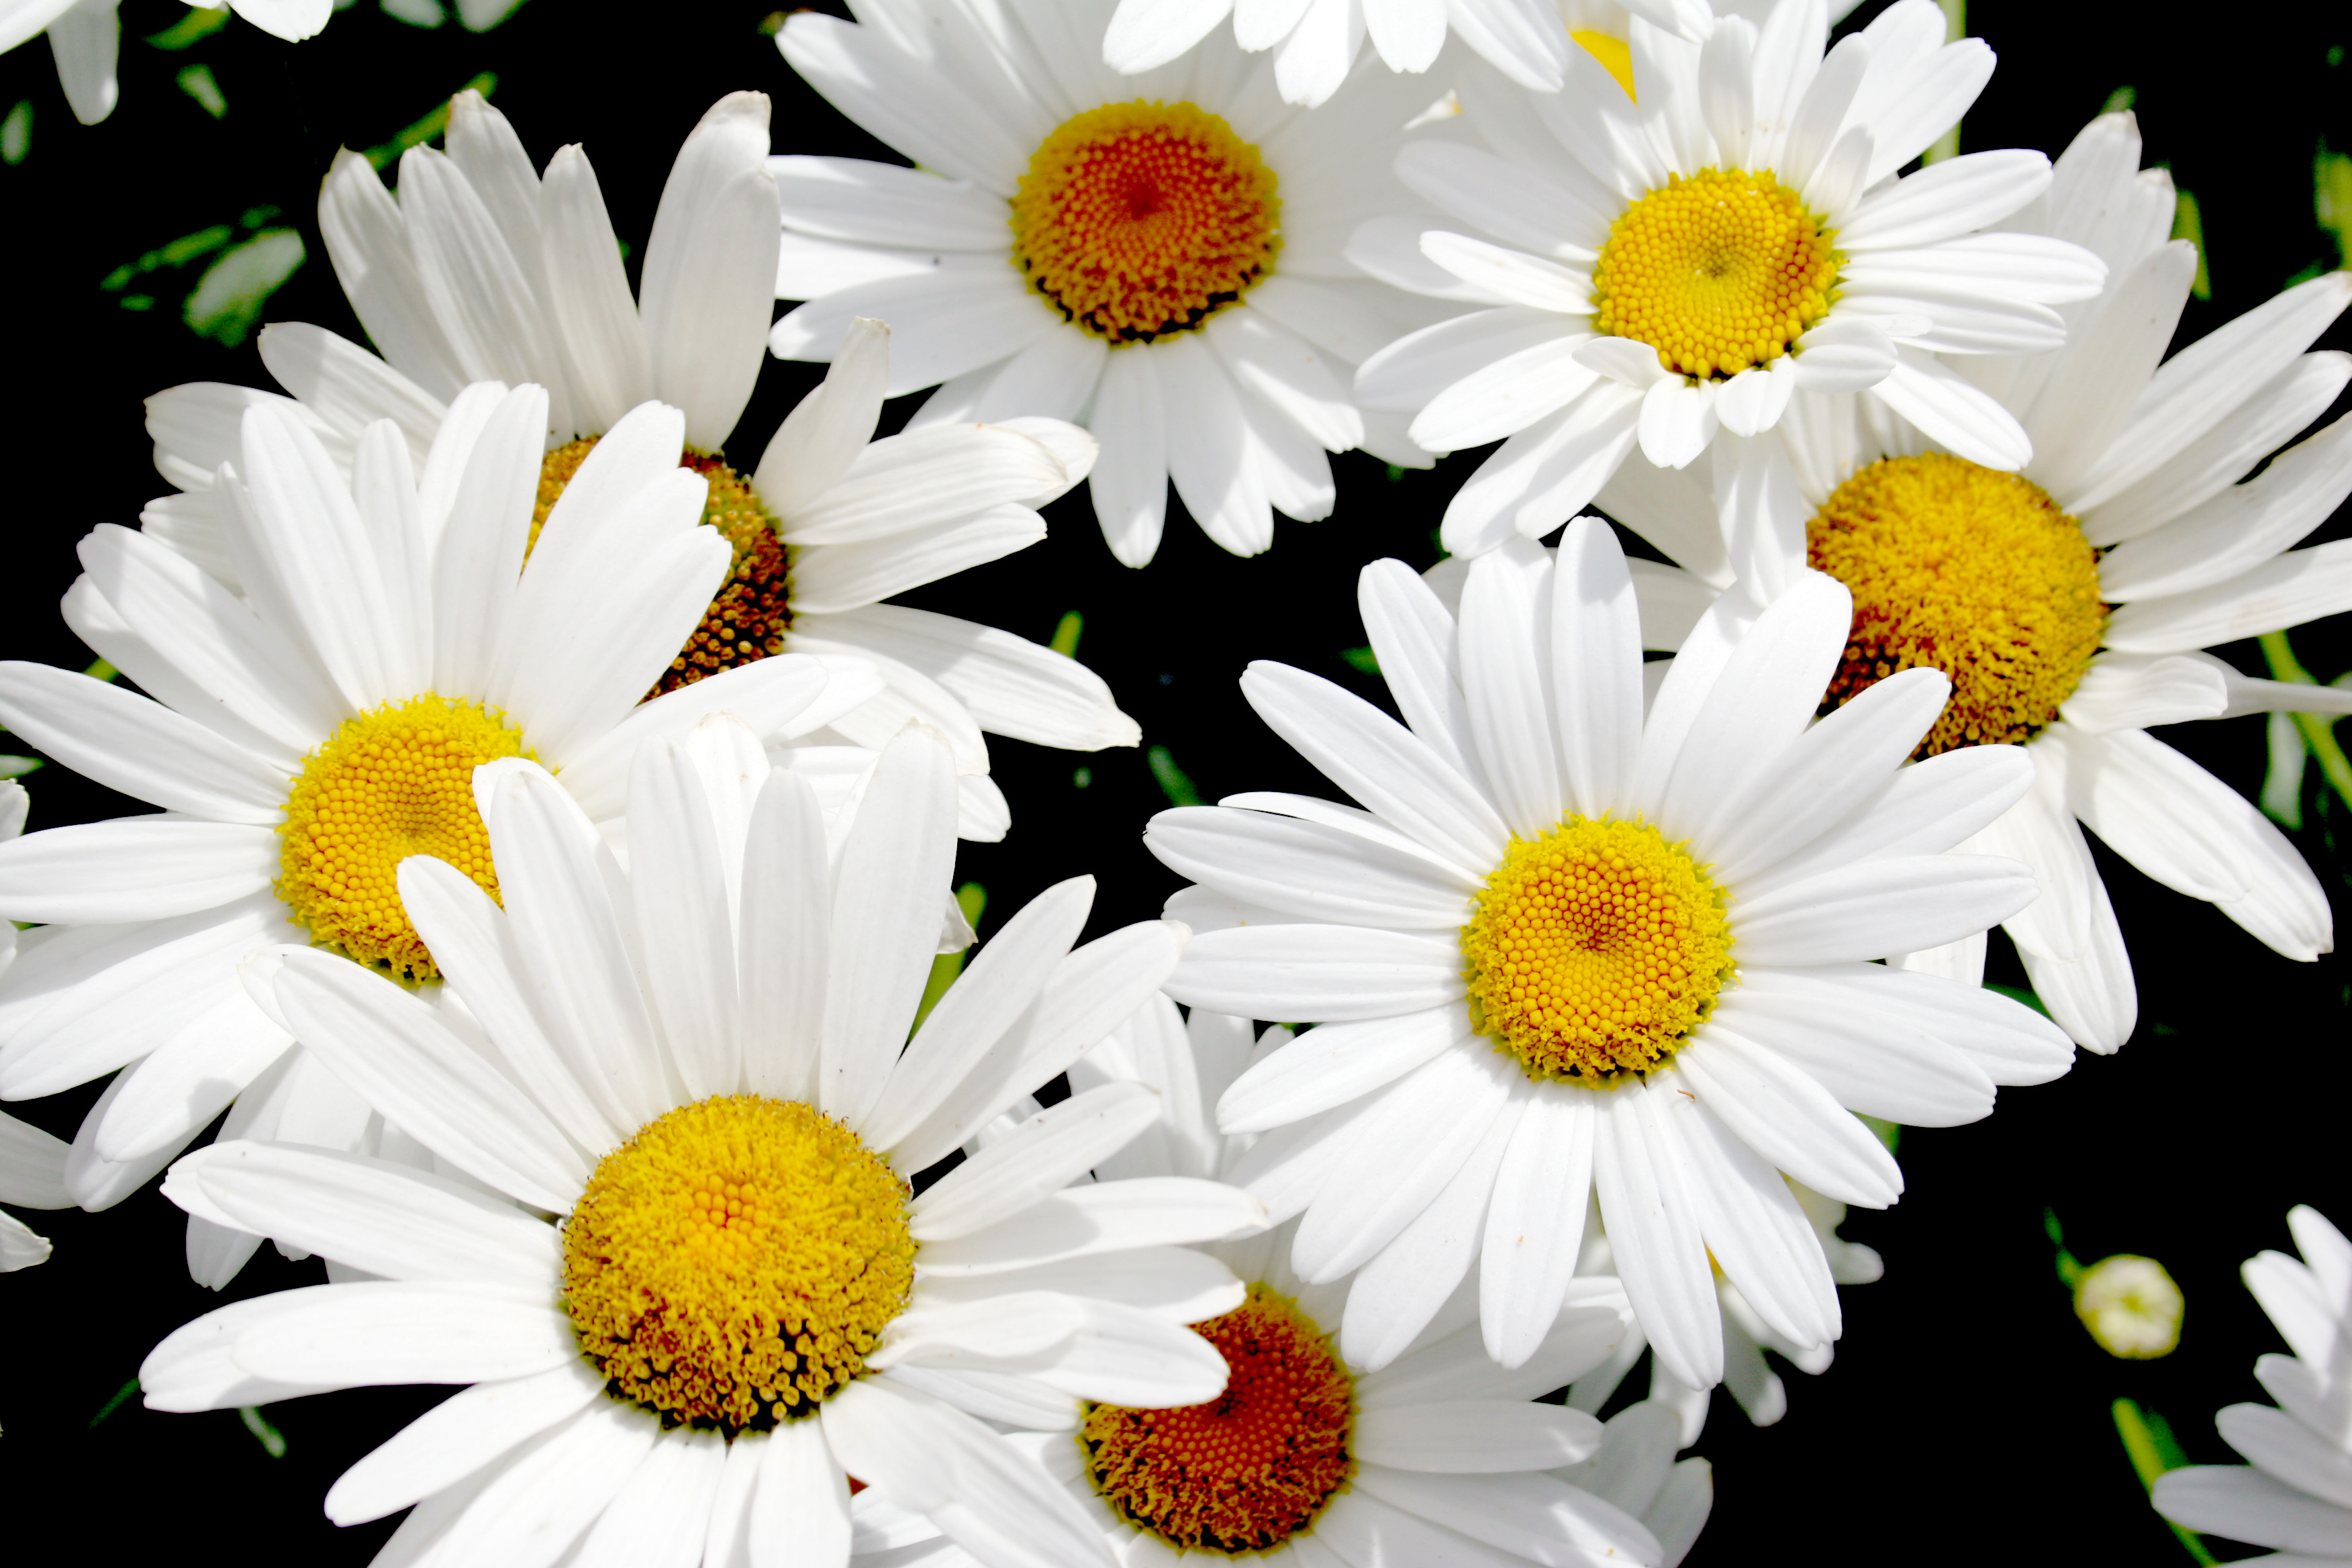 Popular white blooms flower pressflower press types of white flowers mightylinksfo